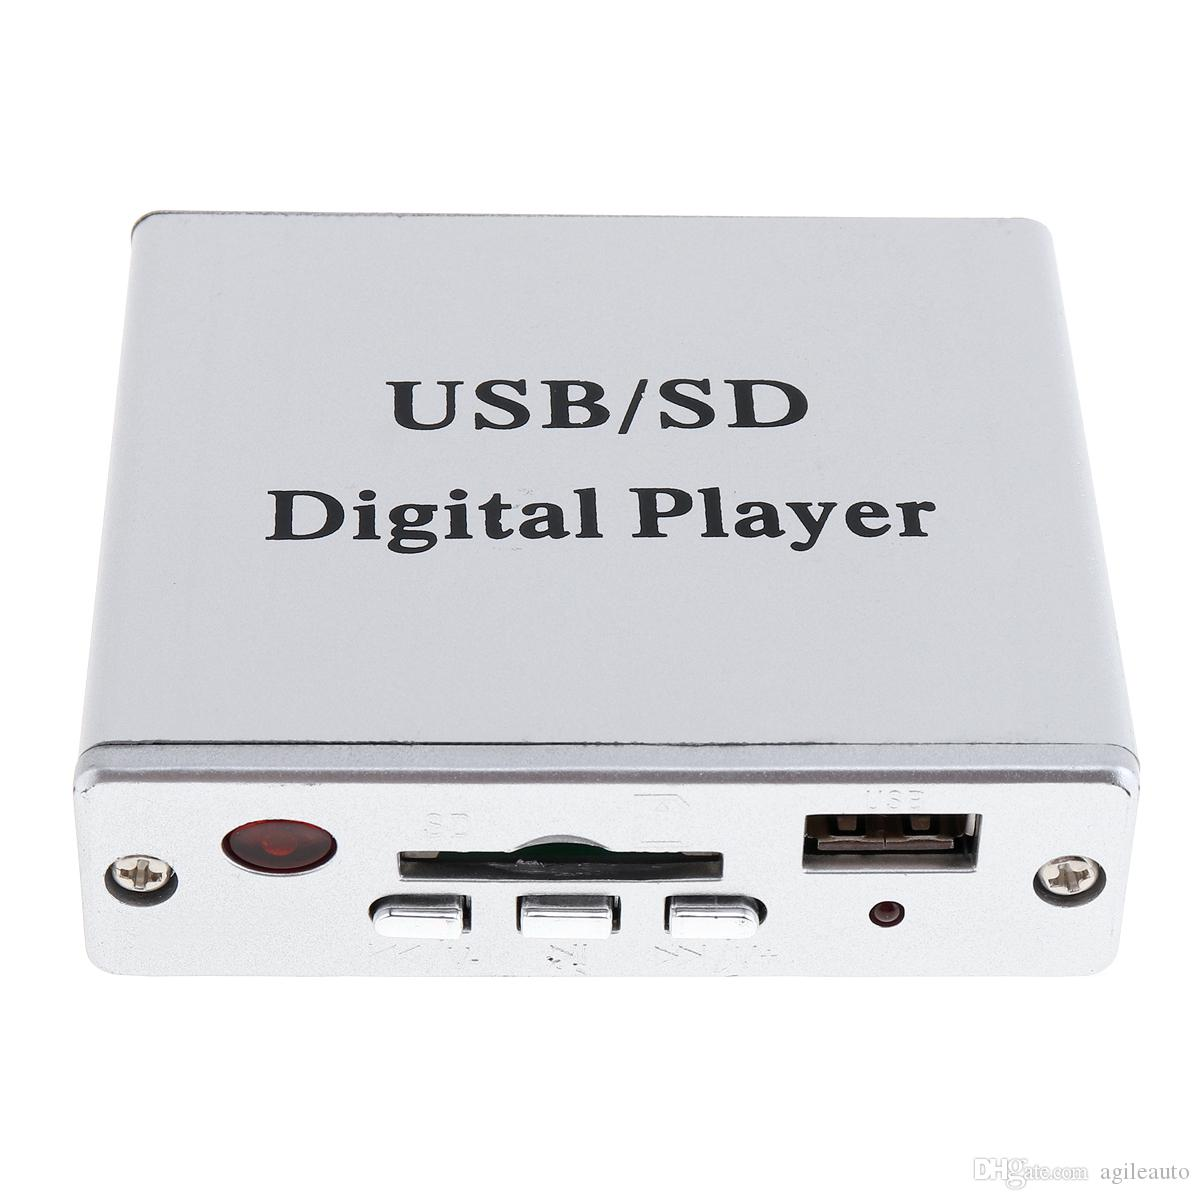 DC 12V Digital Auto Car Power Amplifier MP3 Audio Player Reader 3-Electronic Keypad Control Support USB SD MMC Card with Remote CEC_806